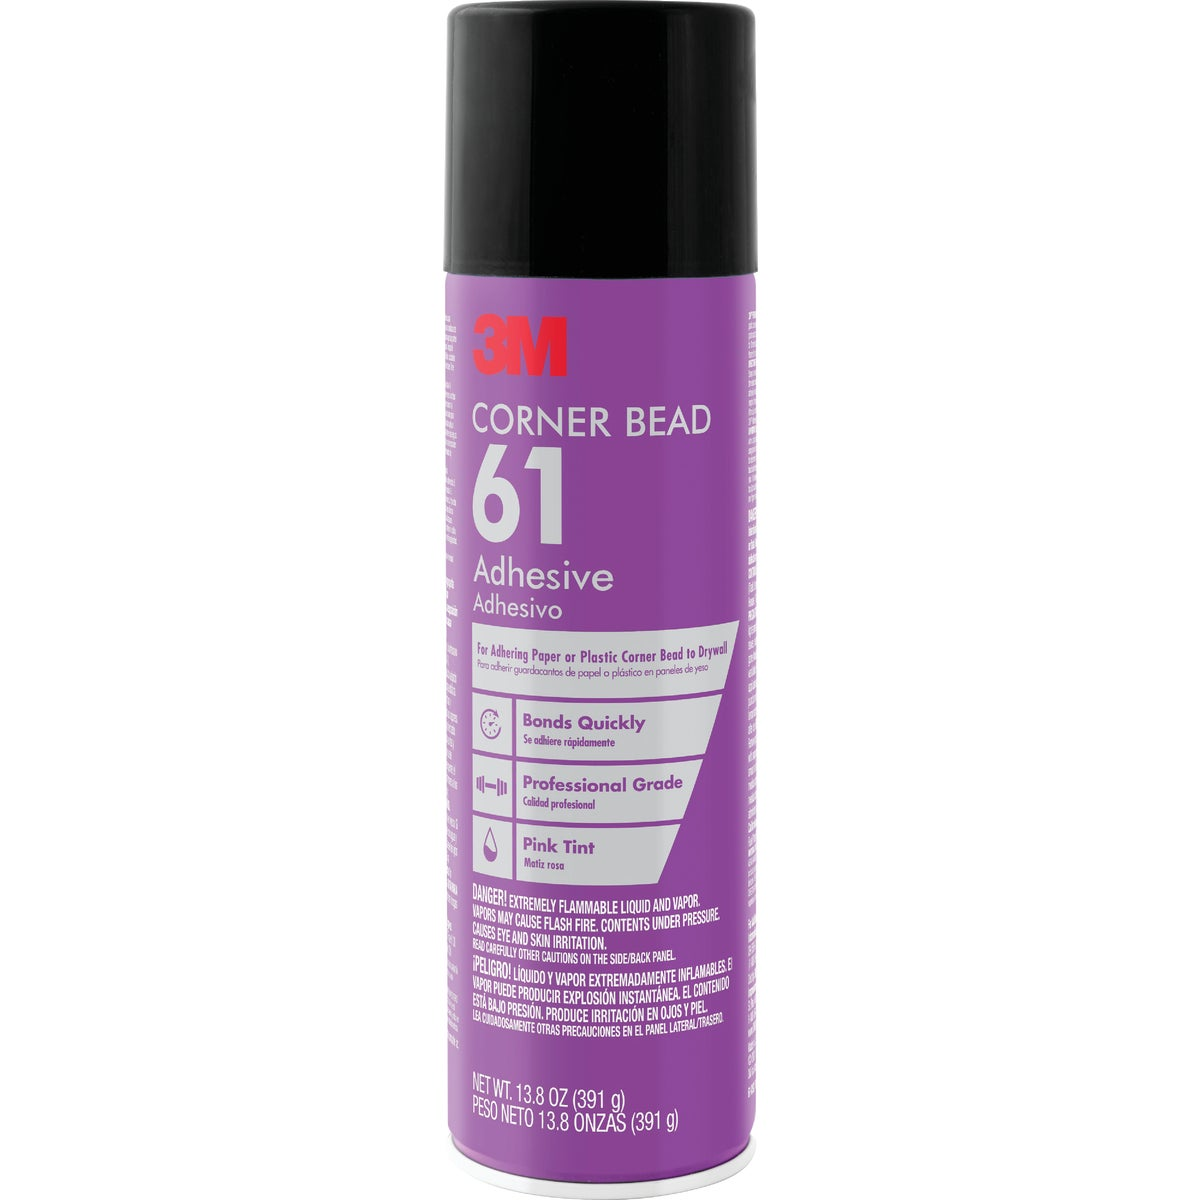 16.6OZ CRN BEAD ADHESIVE - 61-CC by 3m Co